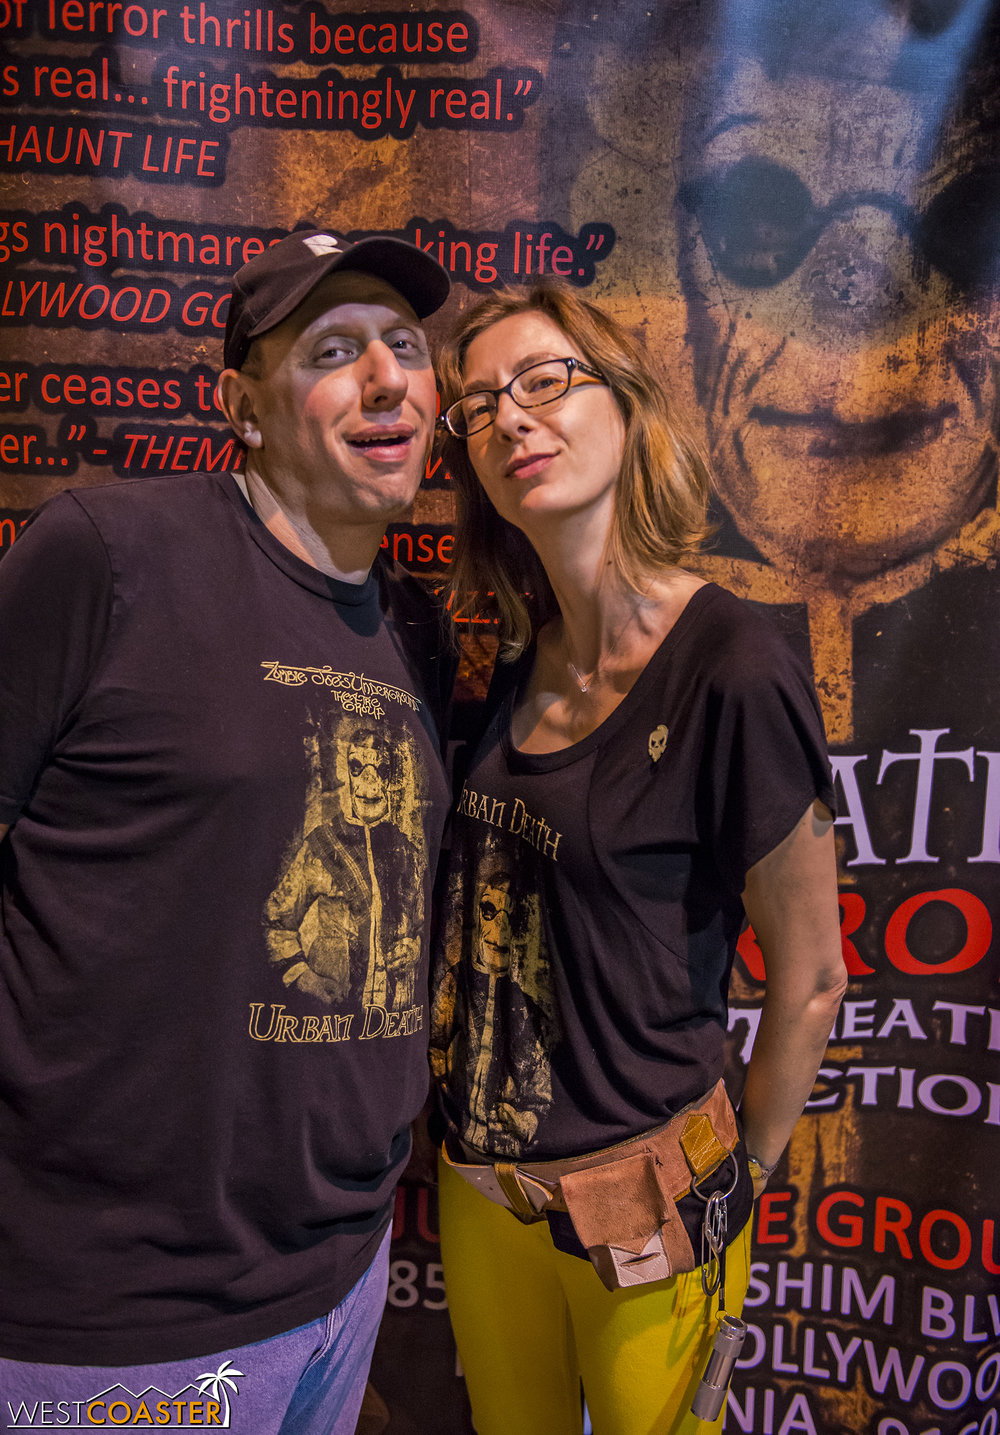 Tour of Terror creators Zombie Joe and Jana Wilmer pose in front of the show banner.